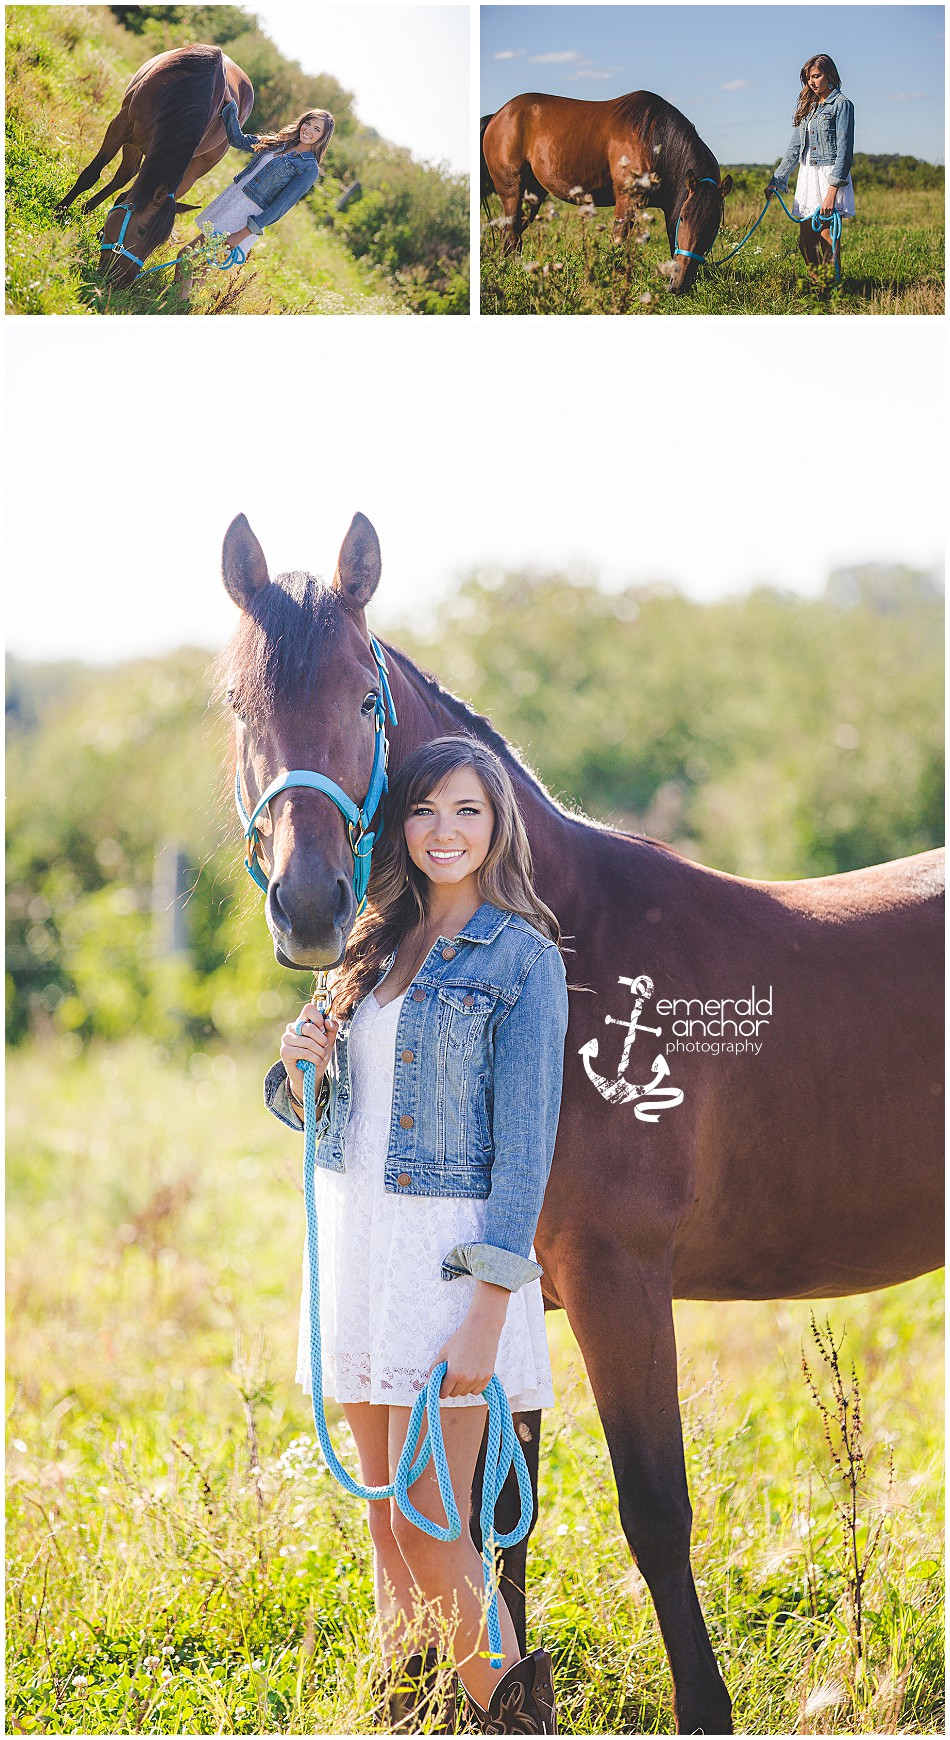 [senior pictures columbus ohio] [delaware ohio photographer] [delaware ohio senior photographer] [Emerald Anchor Photography] (7)